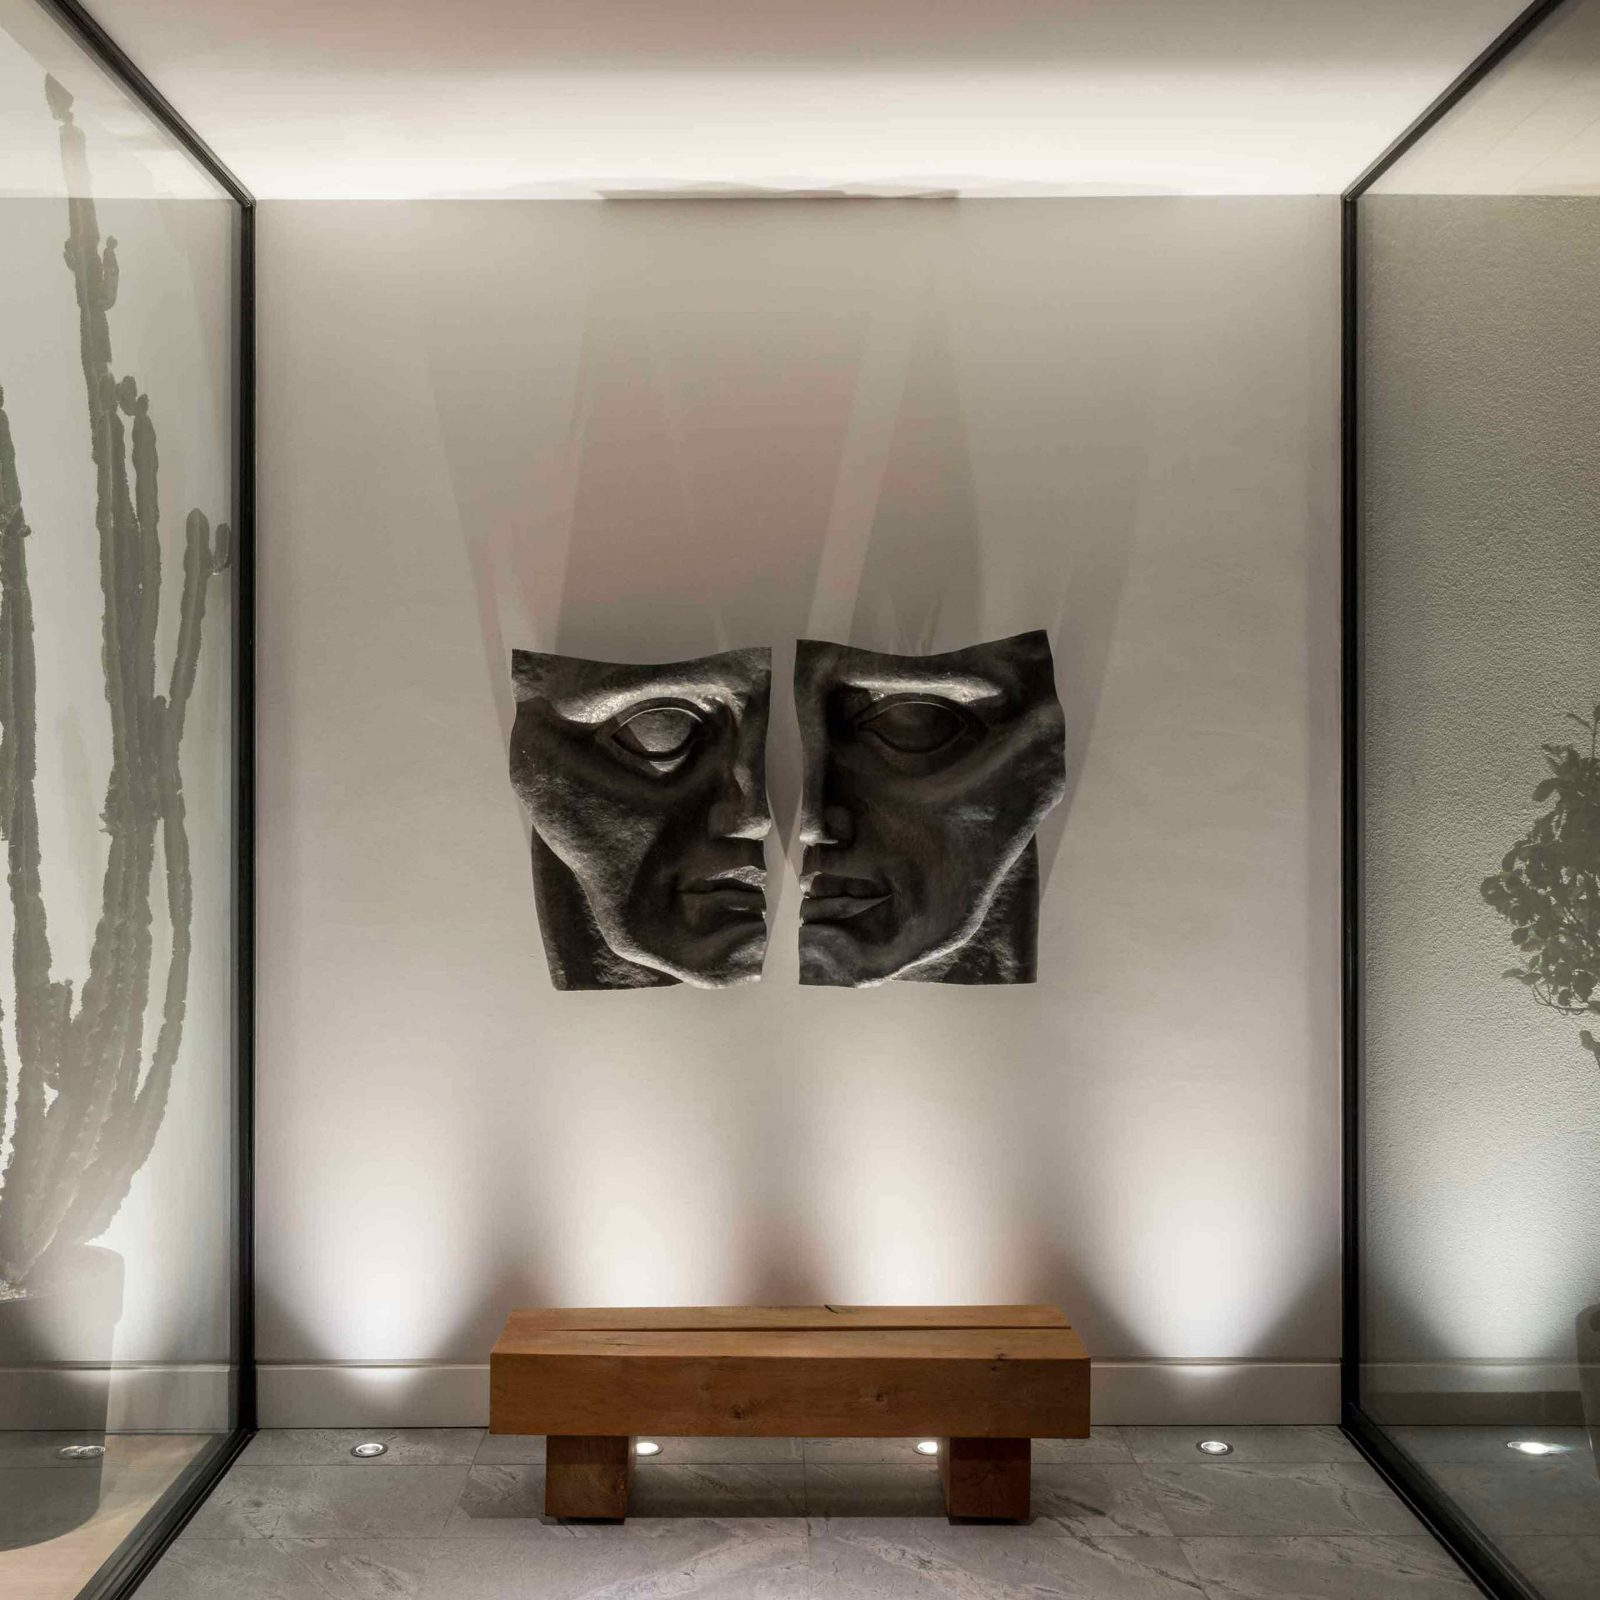 Architectural Lighting Design Residential Entrance Uplighting Artwork Glass Walls Studio N